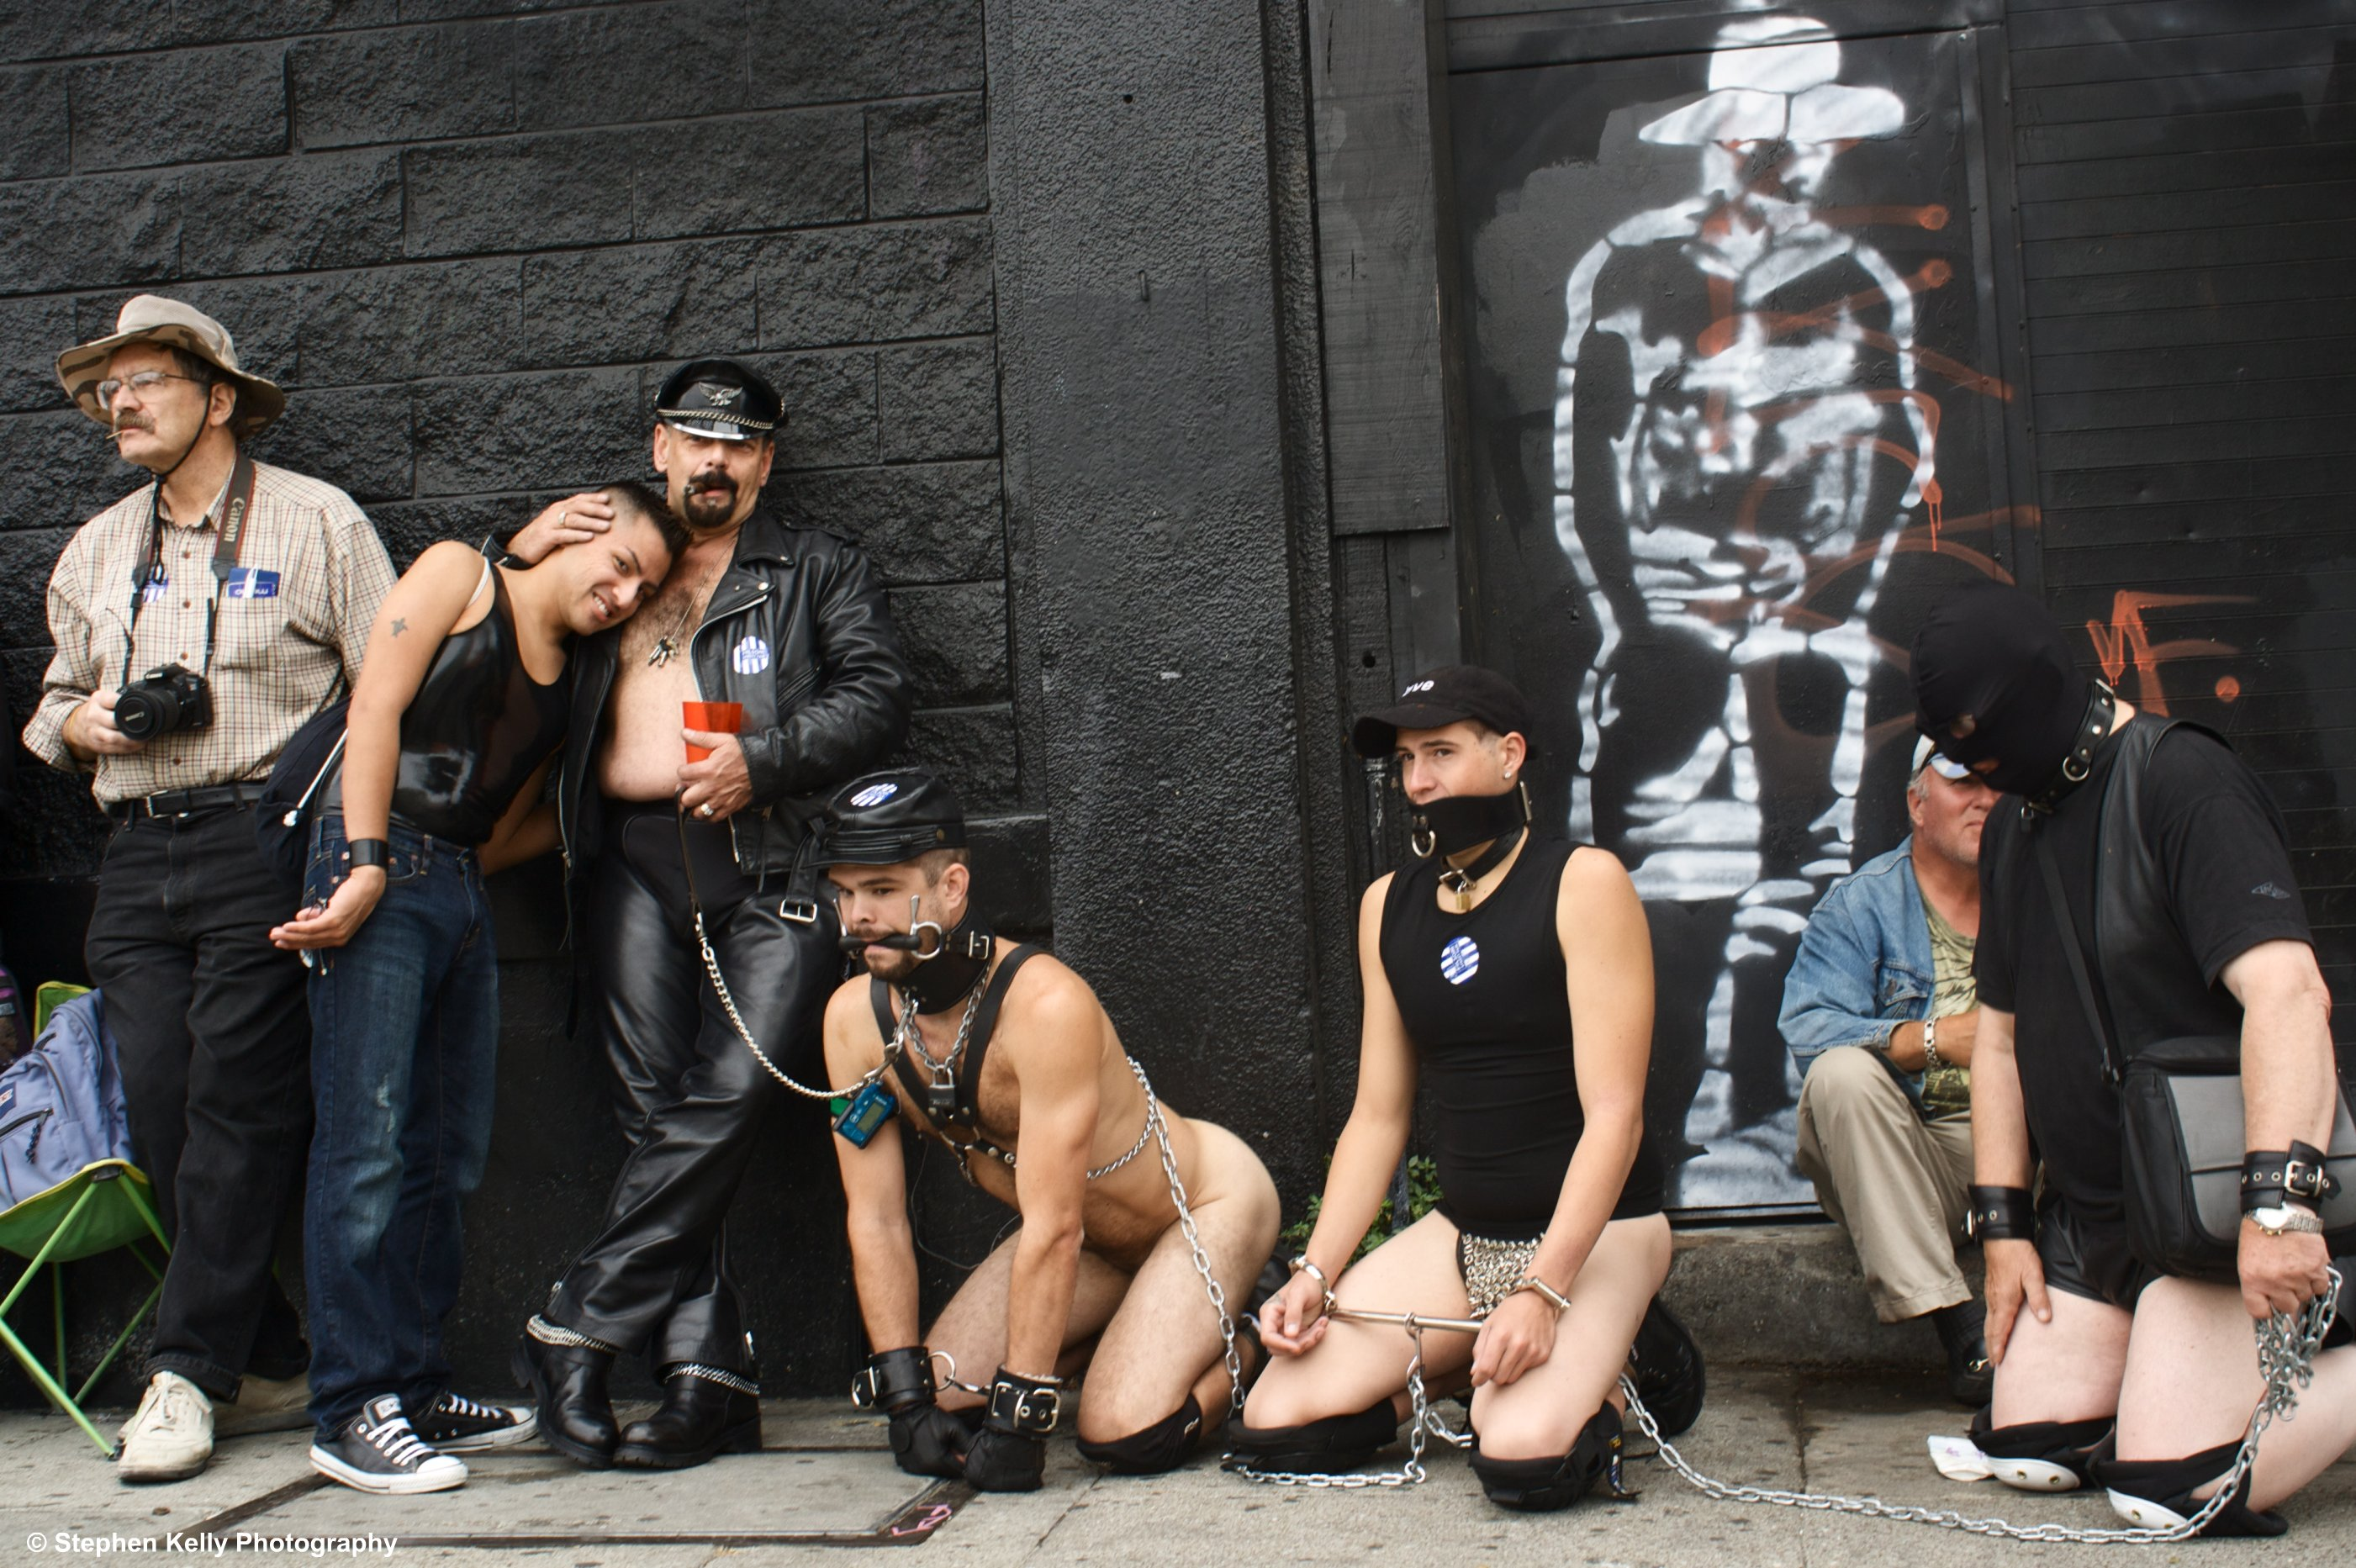 http://san-francisco-hostel.com/sites/default/files/folsom-street-fair-san-francisco-california.jpg